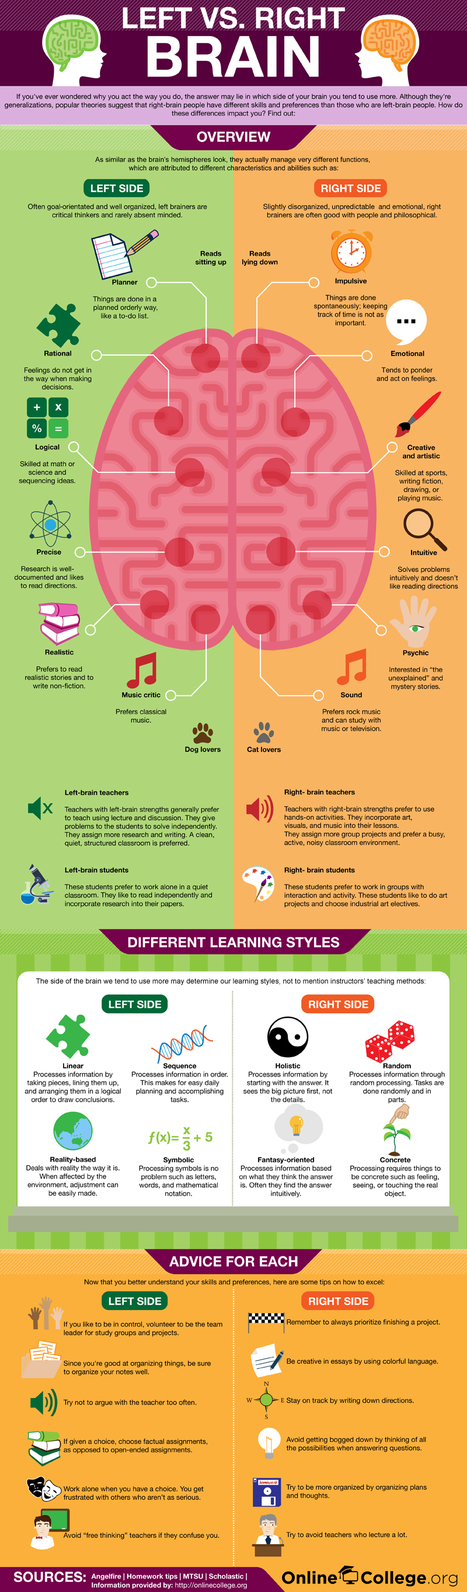 Are You Left or Right Brain? [Infographic] | Academic Research, Methods, Tools, Publishing | Scoop.it